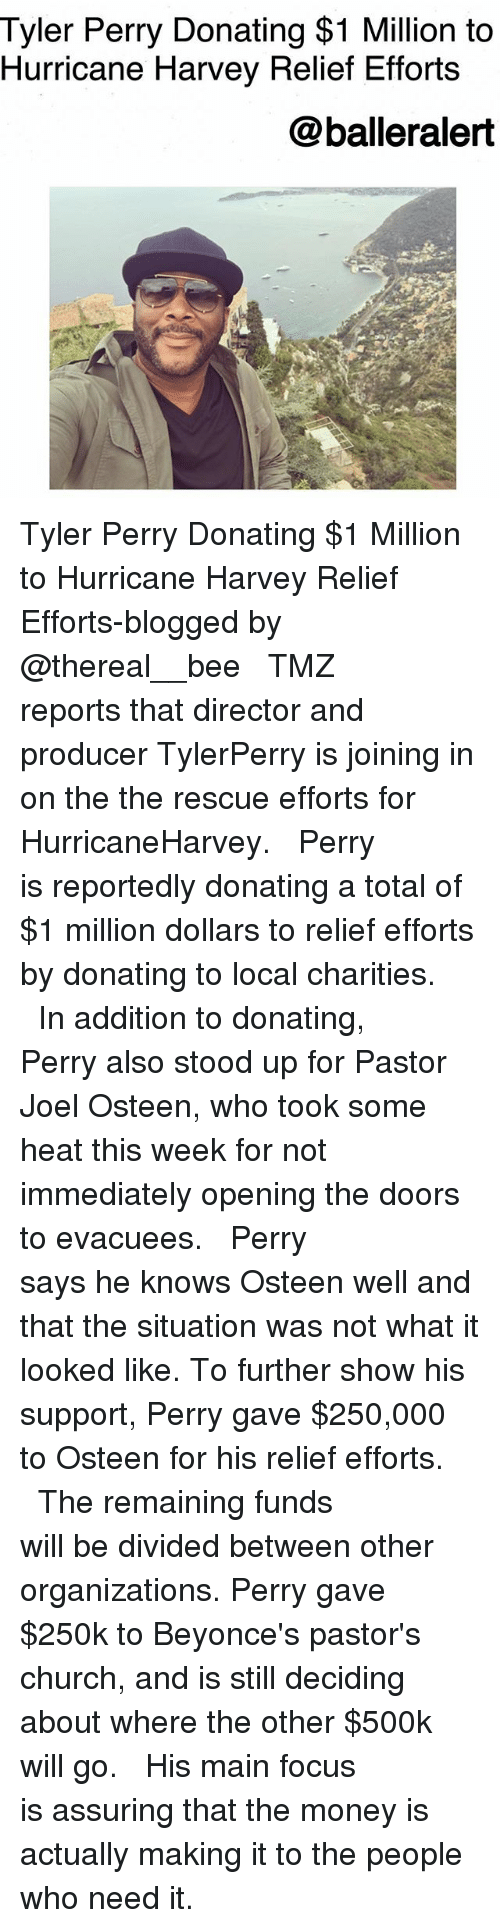 Church, Memes, and Money: Tyler Perry Donating $1 Million to  Hurricane Harvey Relief Efforts  @balleralert Tyler Perry Donating $1 Million to Hurricane Harvey Relief Efforts-blogged by @thereal__bee ⠀⠀⠀⠀⠀⠀⠀⠀⠀ ⠀⠀ TMZ reports that director and producer TylerPerry is joining in on the the rescue efforts for HurricaneHarvey. ⠀⠀⠀⠀⠀⠀⠀⠀⠀ ⠀⠀ Perry is reportedly donating a total of $1 million dollars to relief efforts by donating to local charities. ⠀⠀⠀⠀⠀⠀⠀⠀⠀ ⠀⠀ In addition to donating, Perry also stood up for Pastor Joel Osteen, who took some heat this week for not immediately opening the doors to evacuees. ⠀⠀⠀⠀⠀⠀⠀⠀⠀ ⠀⠀ Perry says he knows Osteen well and that the situation was not what it looked like. To further show his support, Perry gave $250,000 to Osteen for his relief efforts. ⠀⠀⠀⠀⠀⠀⠀⠀⠀ ⠀⠀ The remaining funds will be divided between other organizations. Perry gave $250k to Beyonce's pastor's church, and is still deciding about where the other $500k will go. ⠀⠀⠀⠀⠀⠀⠀⠀⠀ ⠀⠀ His main focus is assuring that the money is actually making it to the people who need it.